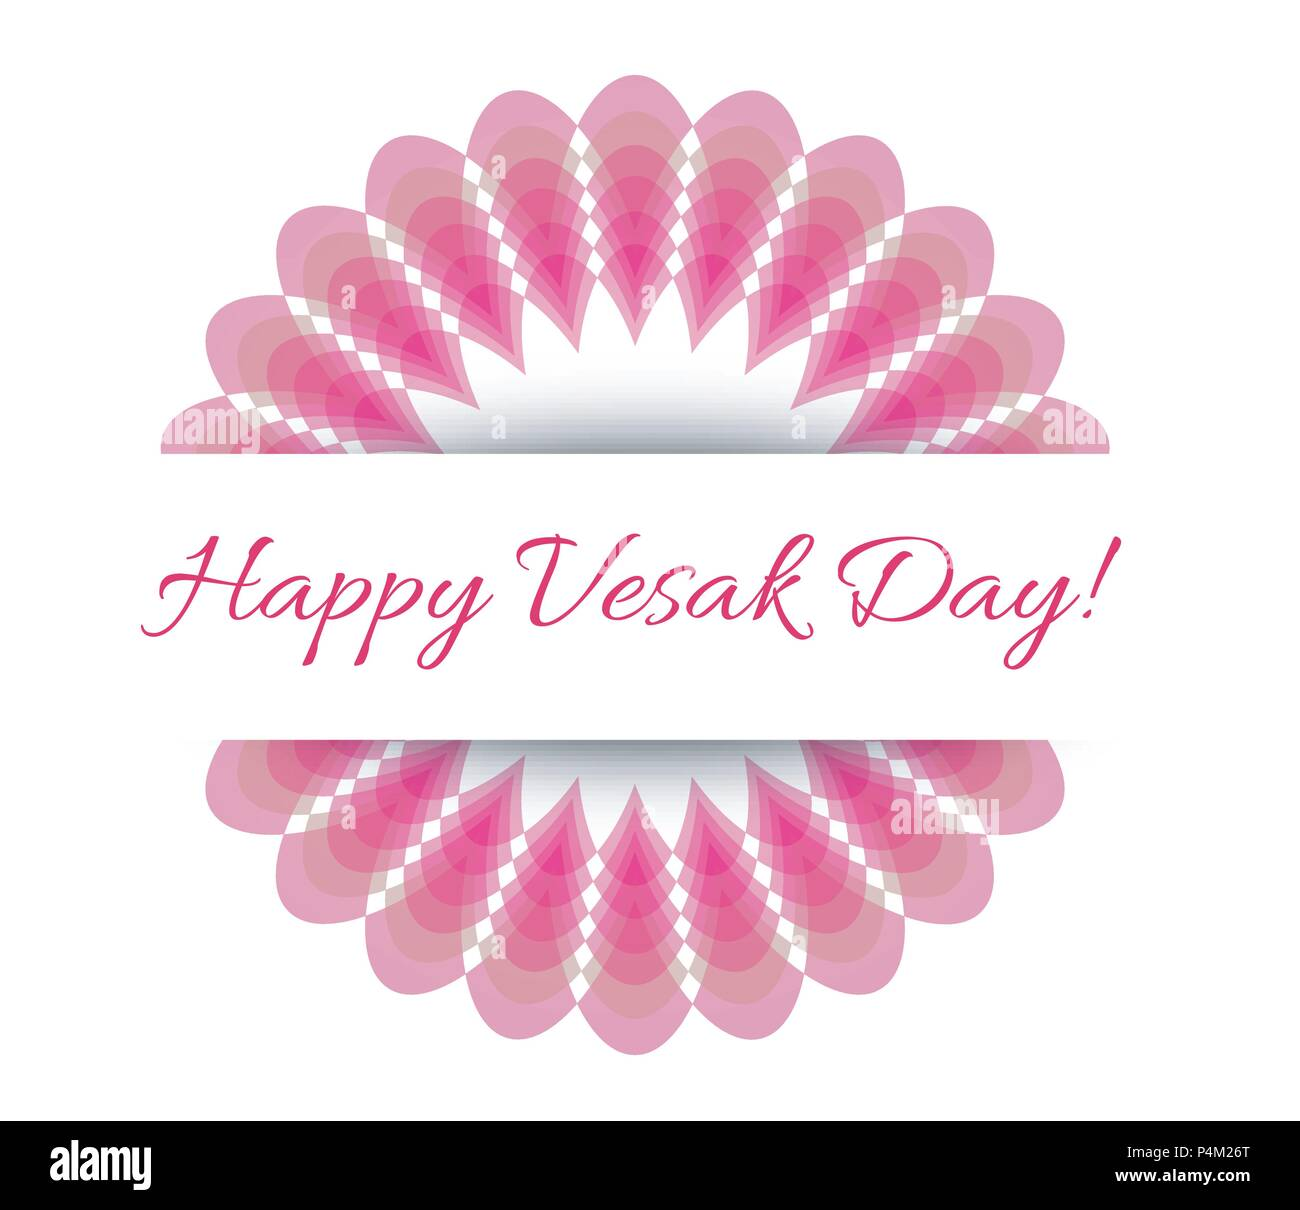 Vesak day card with pink lotus. Lotus is associated with fortune according to Buddhism - Stock Image